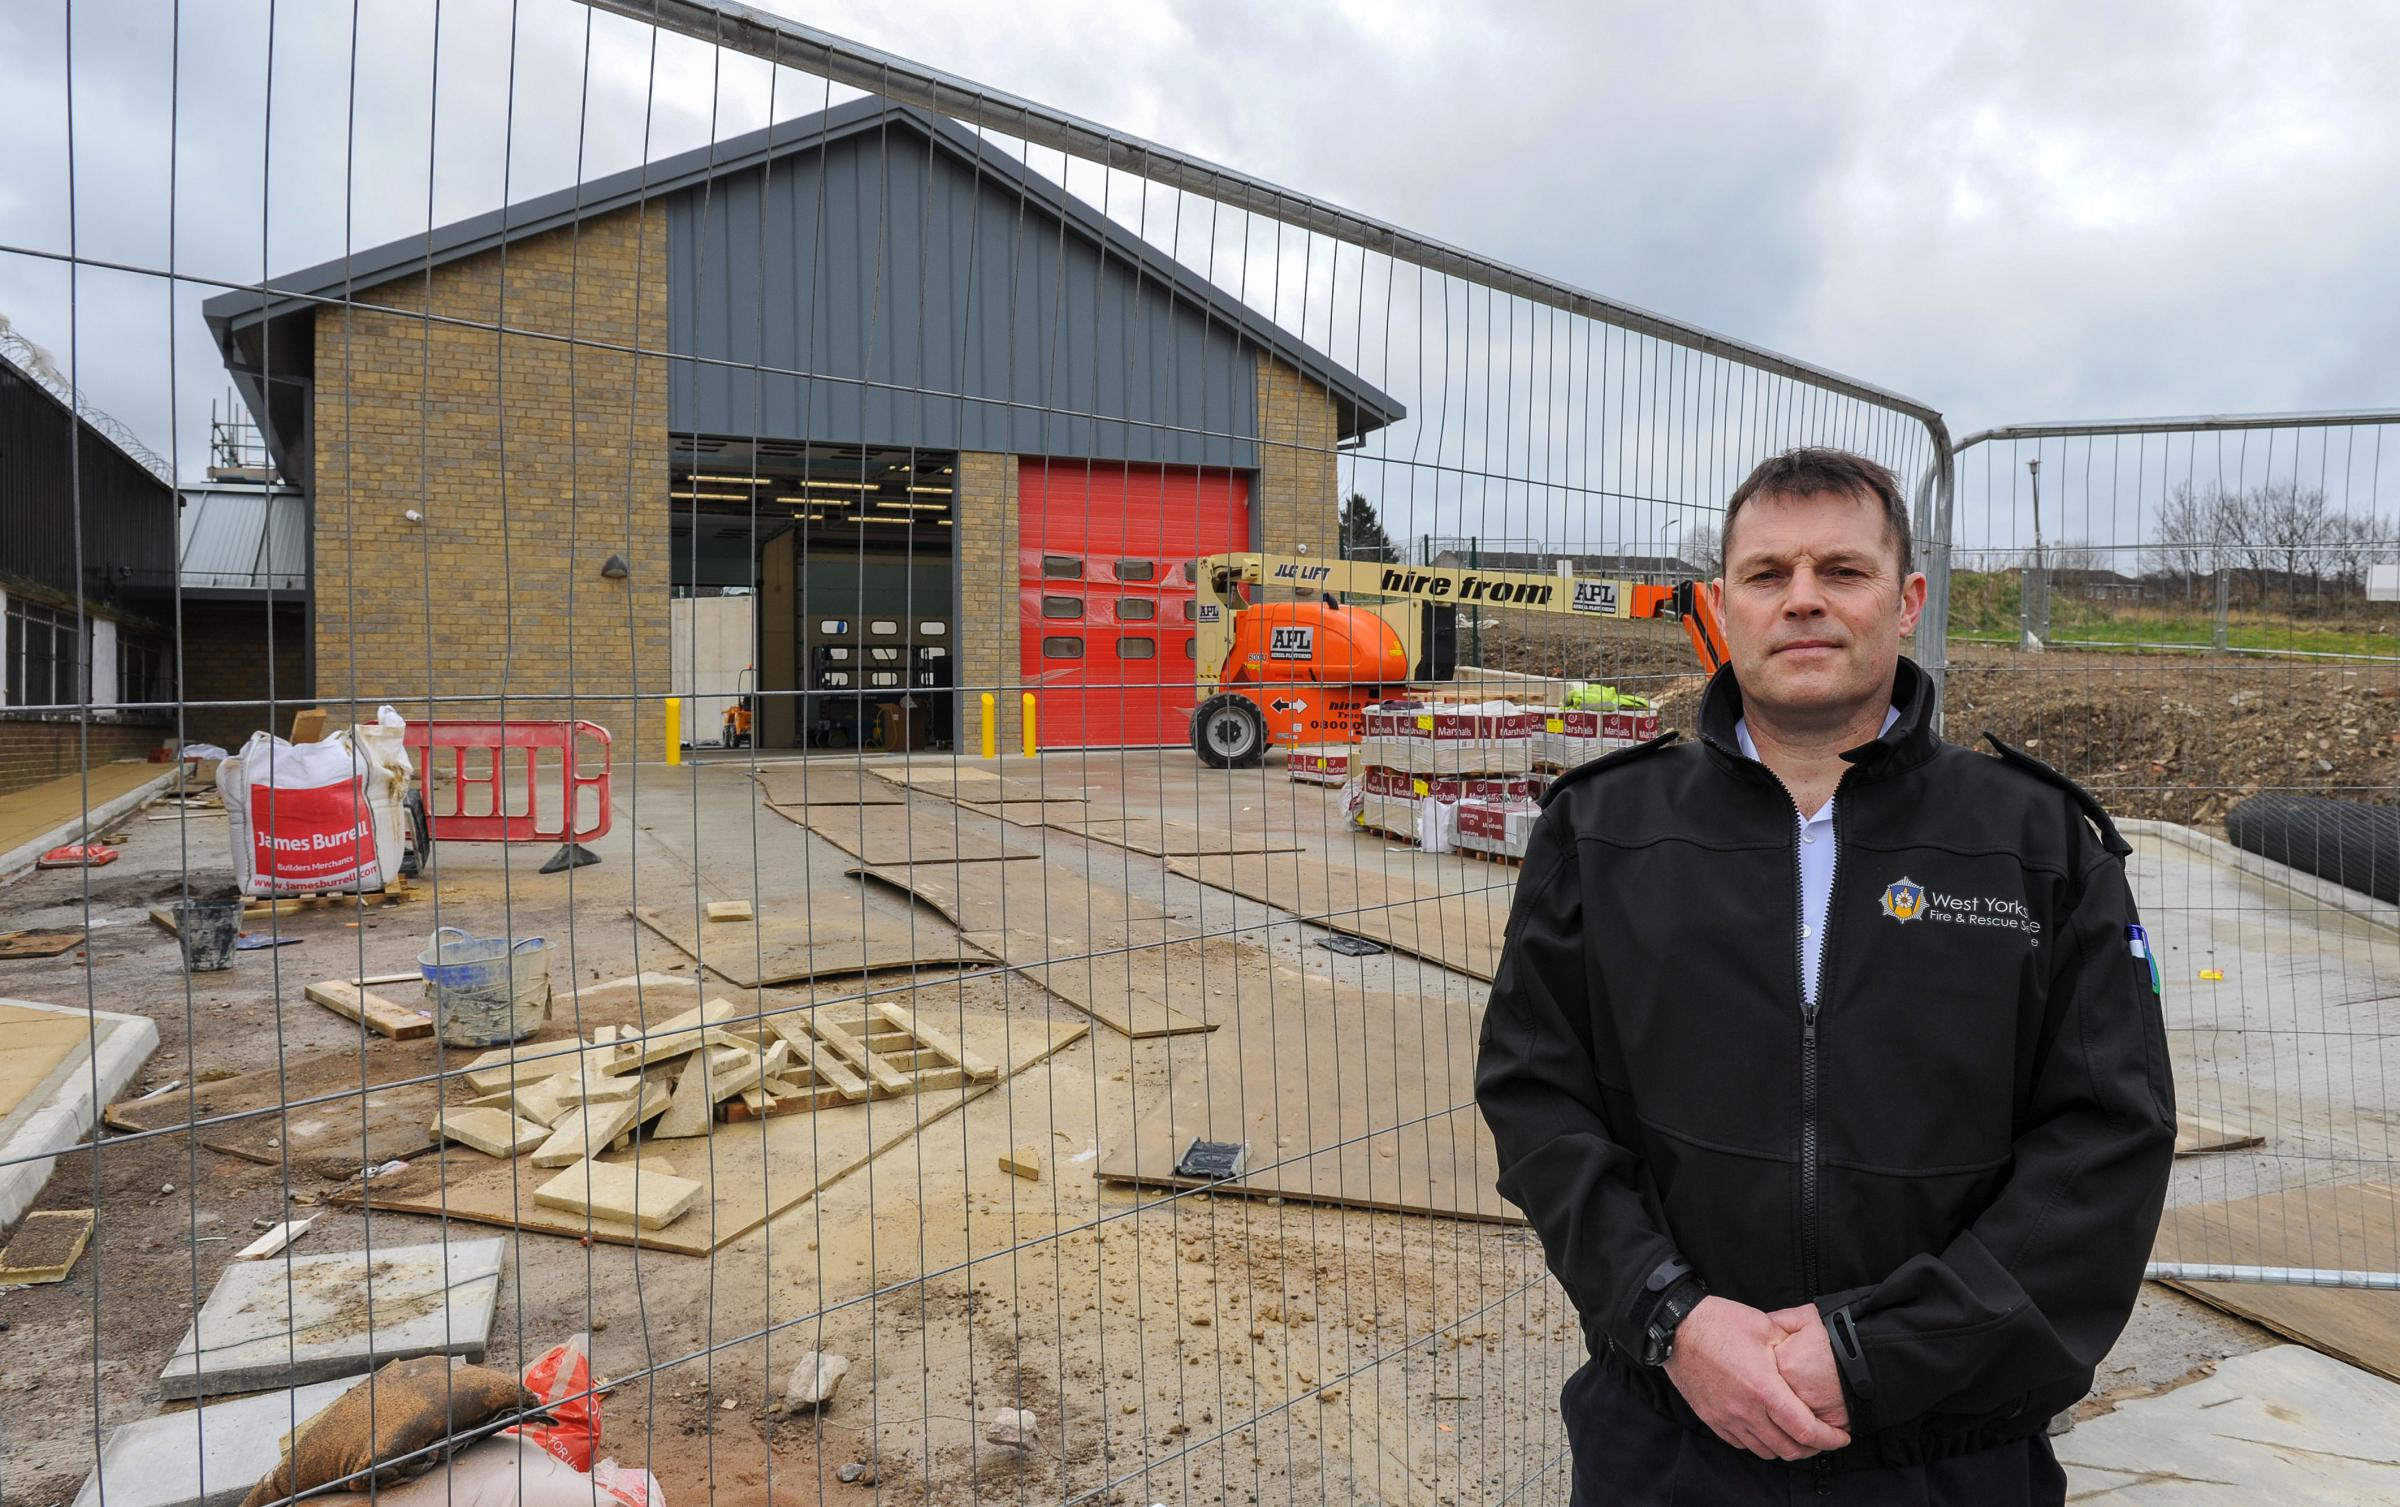 Great savings and offers incommunities - Work To Flatten Fire Stations At Shipley And Idle For New Housing Could Start In June From Bradford Telegraph And Argus